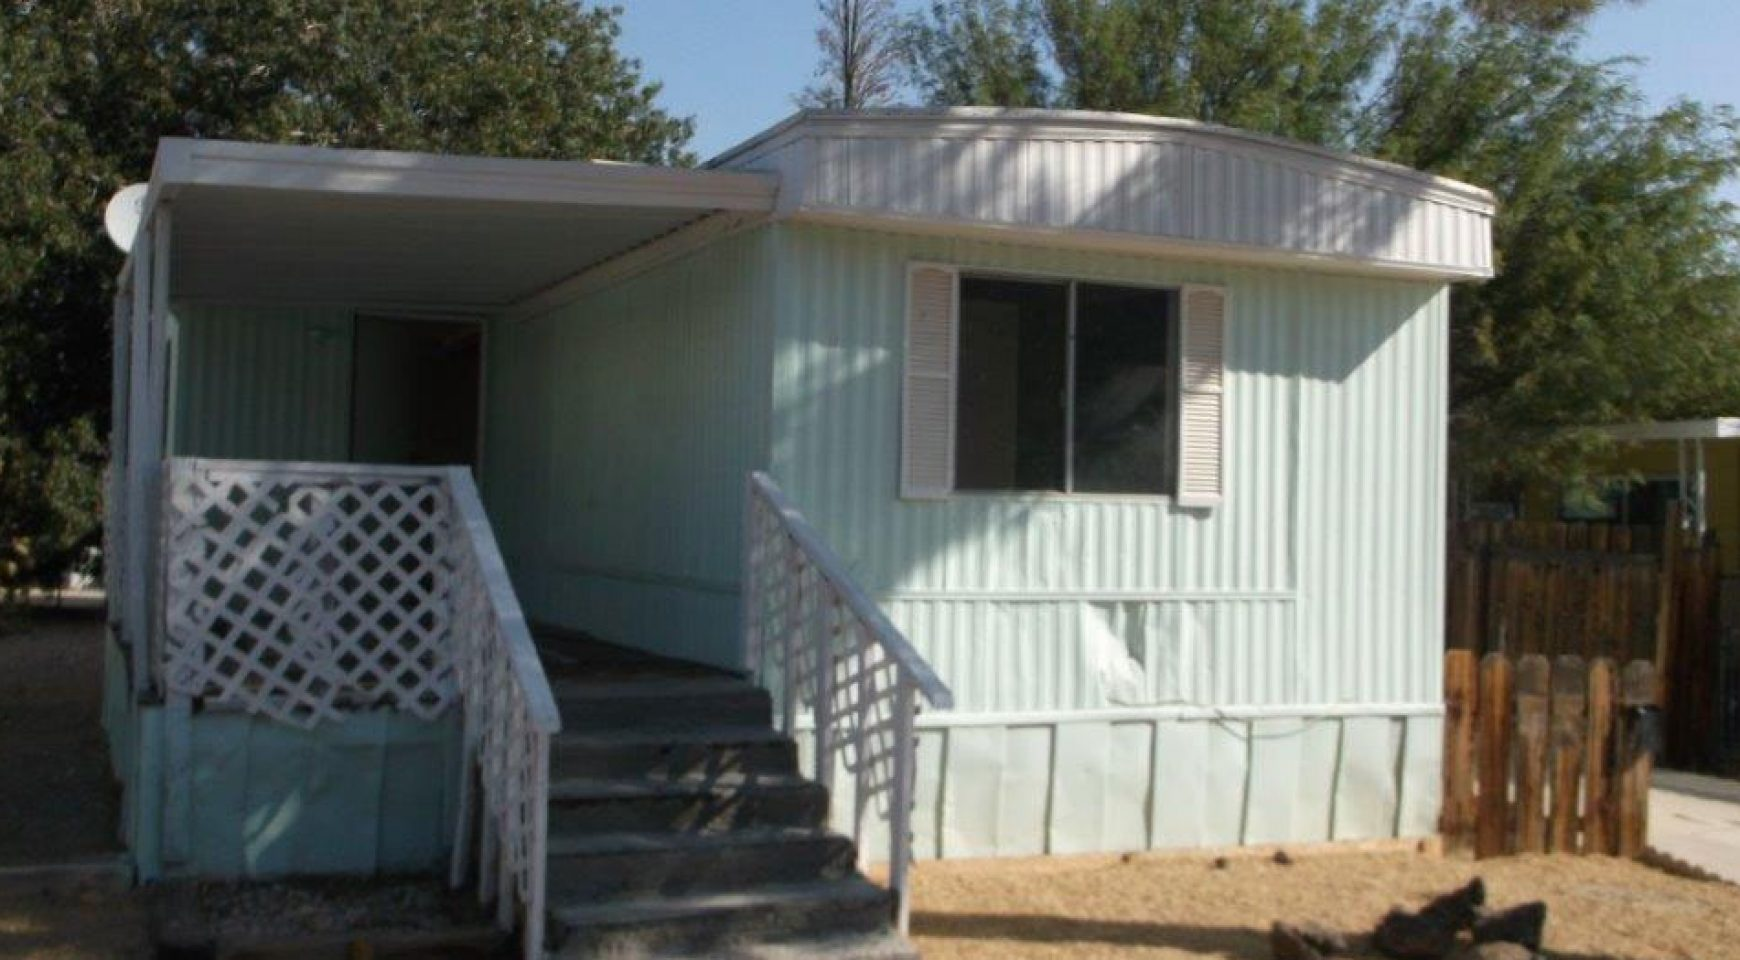 Mobile Home For Sale In Orange County on apartments in orange county, events in orange county, zip codes in orange county, model homes in orange county,